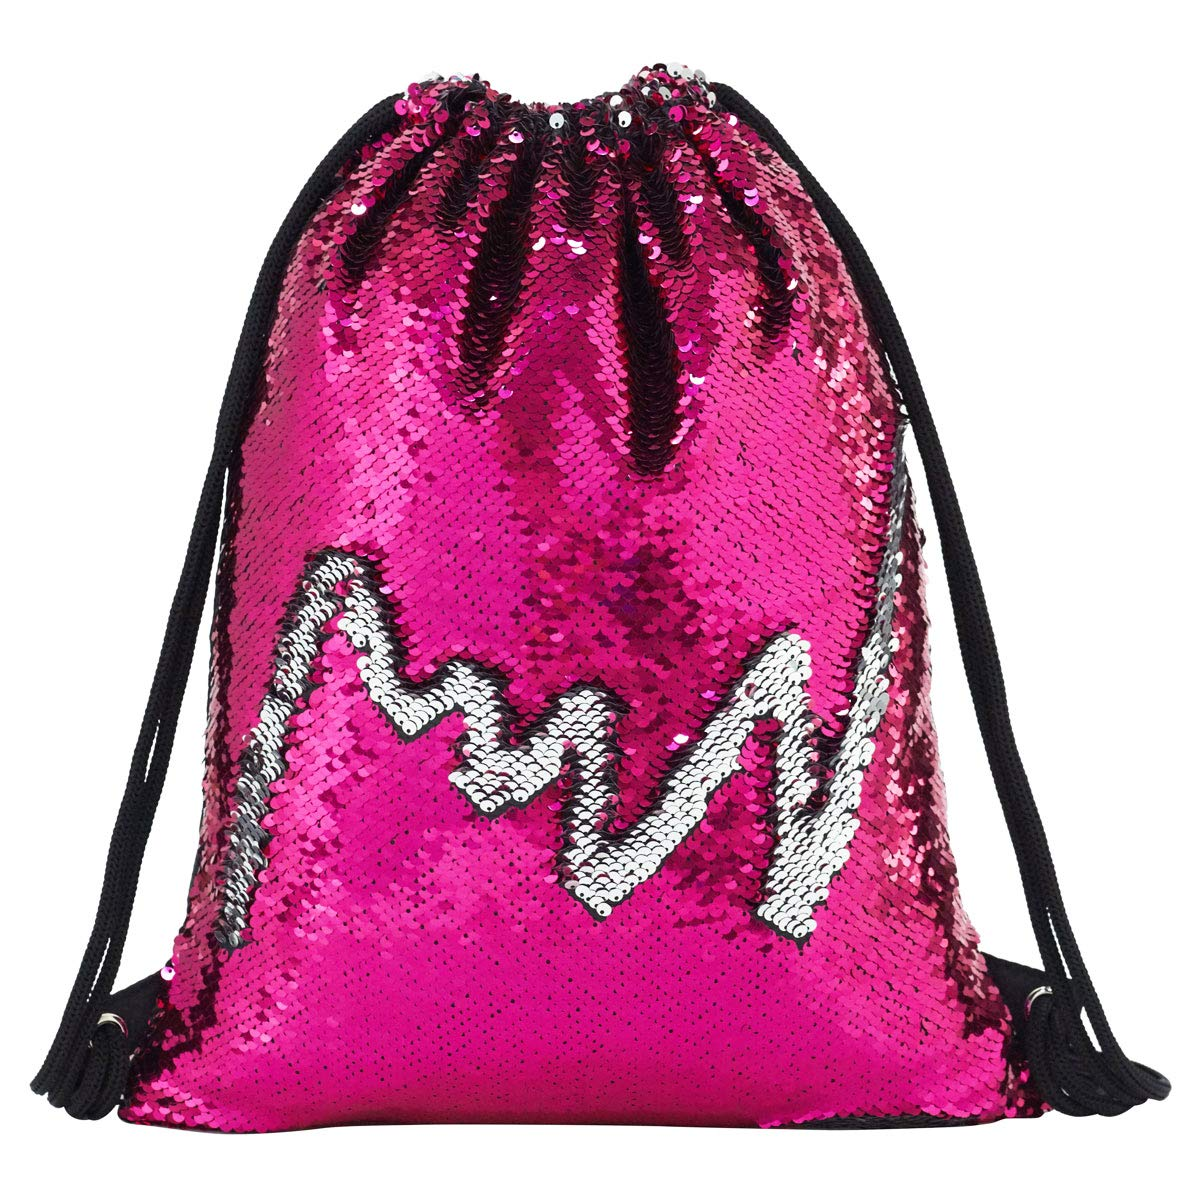 Mermaid Drawstring Bag Magic Reversible Sequin Backpack Glittering Dance School Bag for Yoga Outdoors Sports,Mothers' Day Gift for Girls Women Kids(Rose/silvery) by Segorts (Image #2)